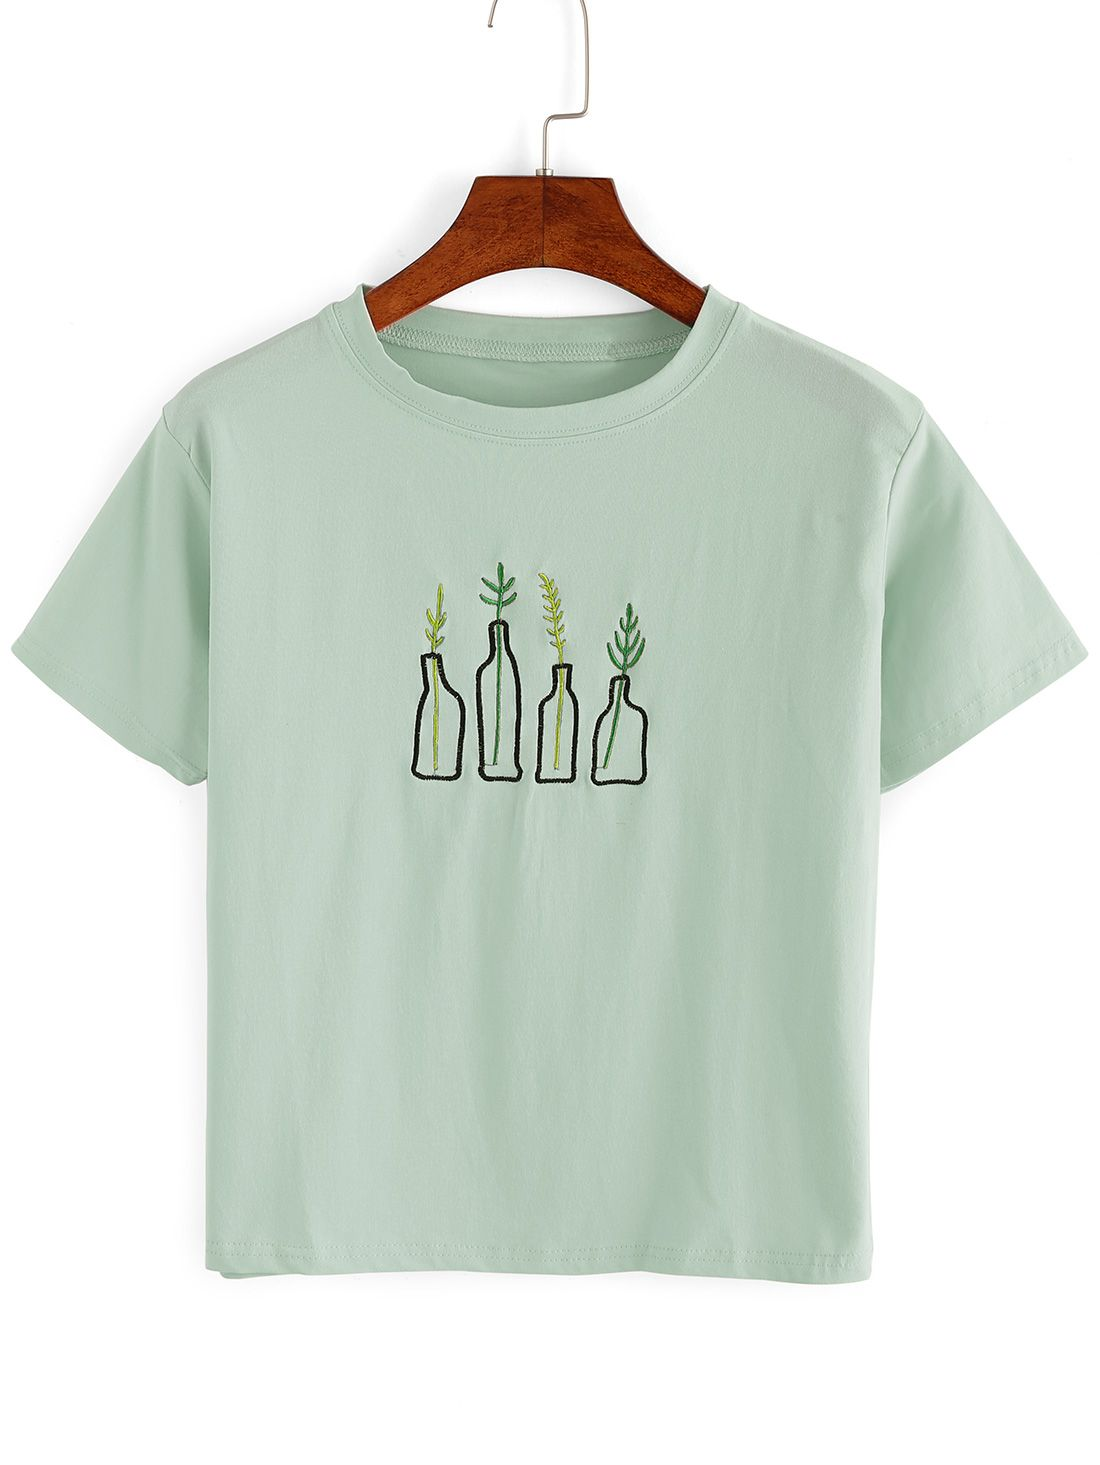 7136e7bd919 Shop Green Plant Embroidered T-Shirt online. SheIn offers Green Plant Embroidered  T-Shirt   more to fit your fashionable needs.